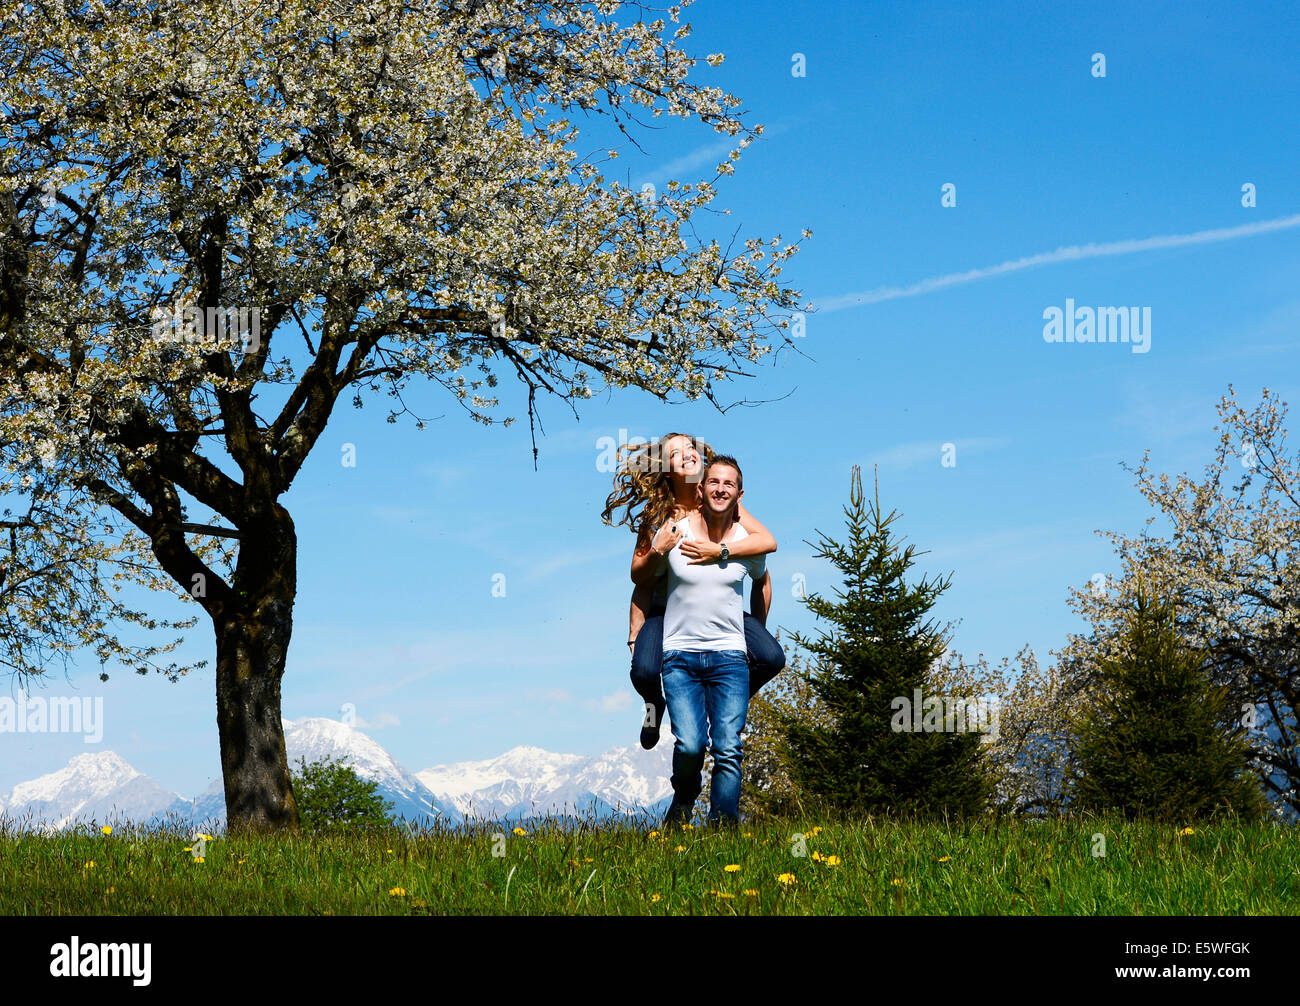 Man carrying a woman, smiling, in front of a flowering tree in the spring, Tyrol, Austria Stock Photo